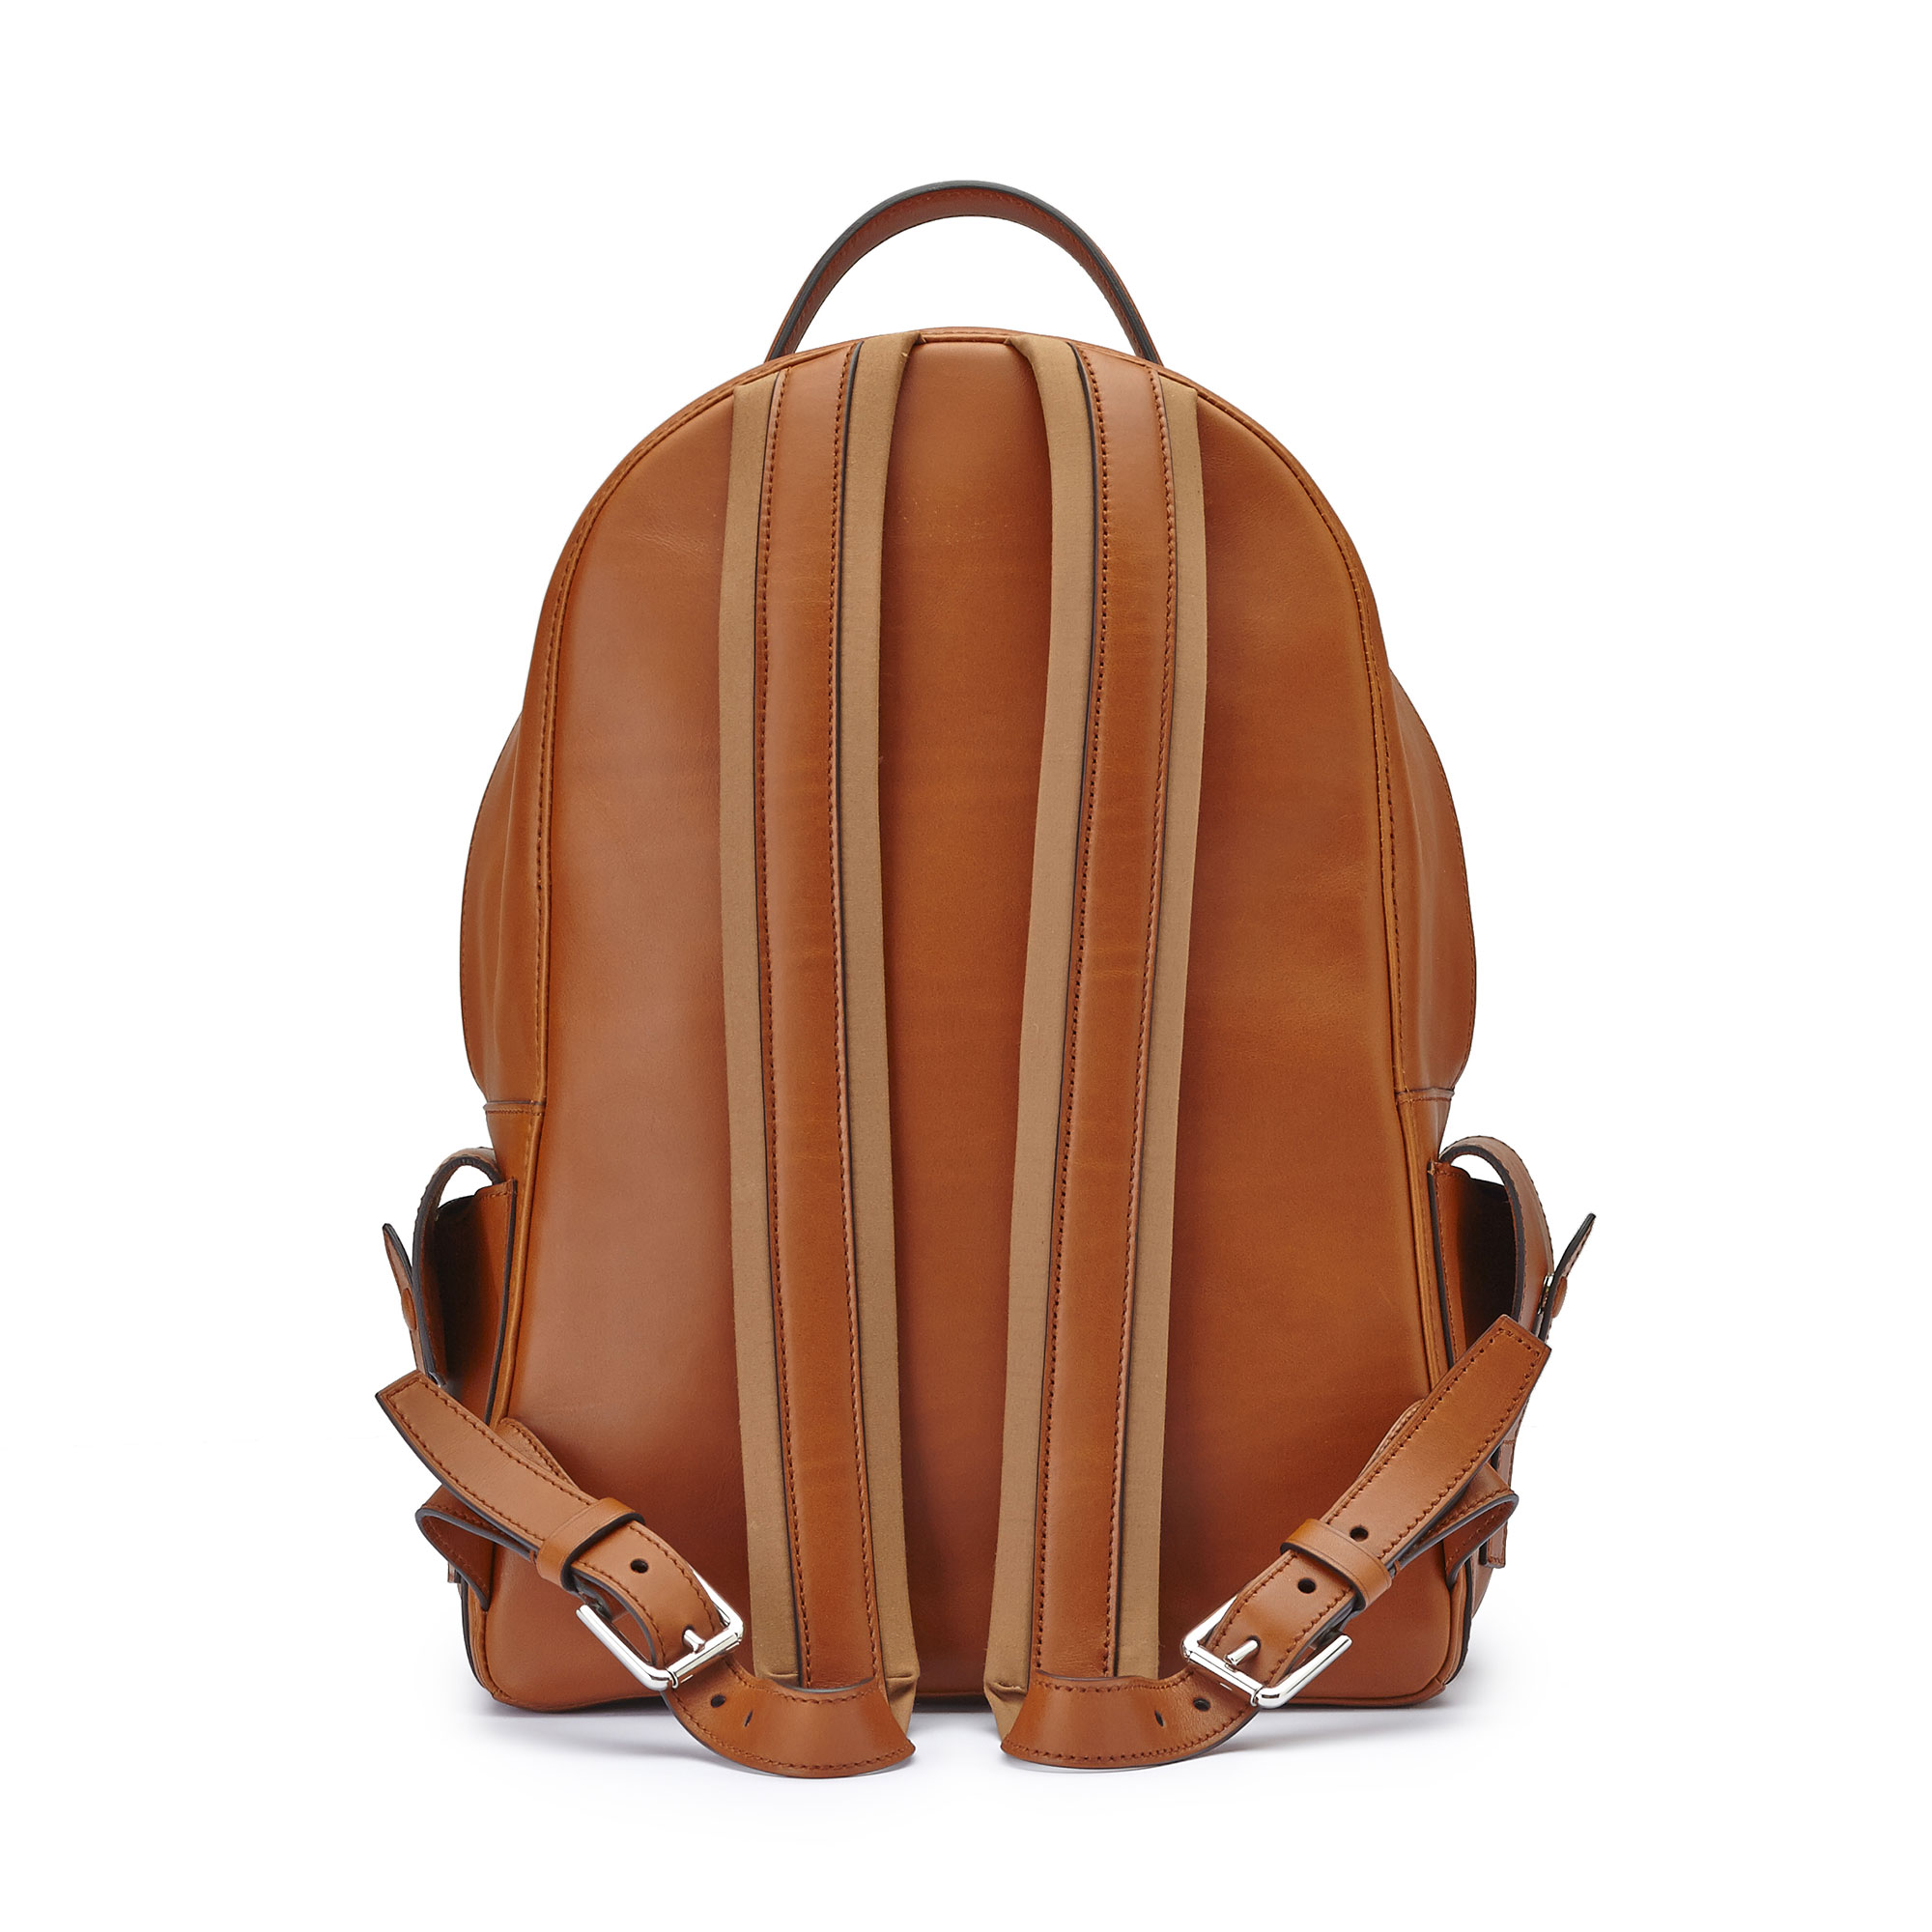 The terrabruciata french calf Zip Backpack by Bertoni 1949 04